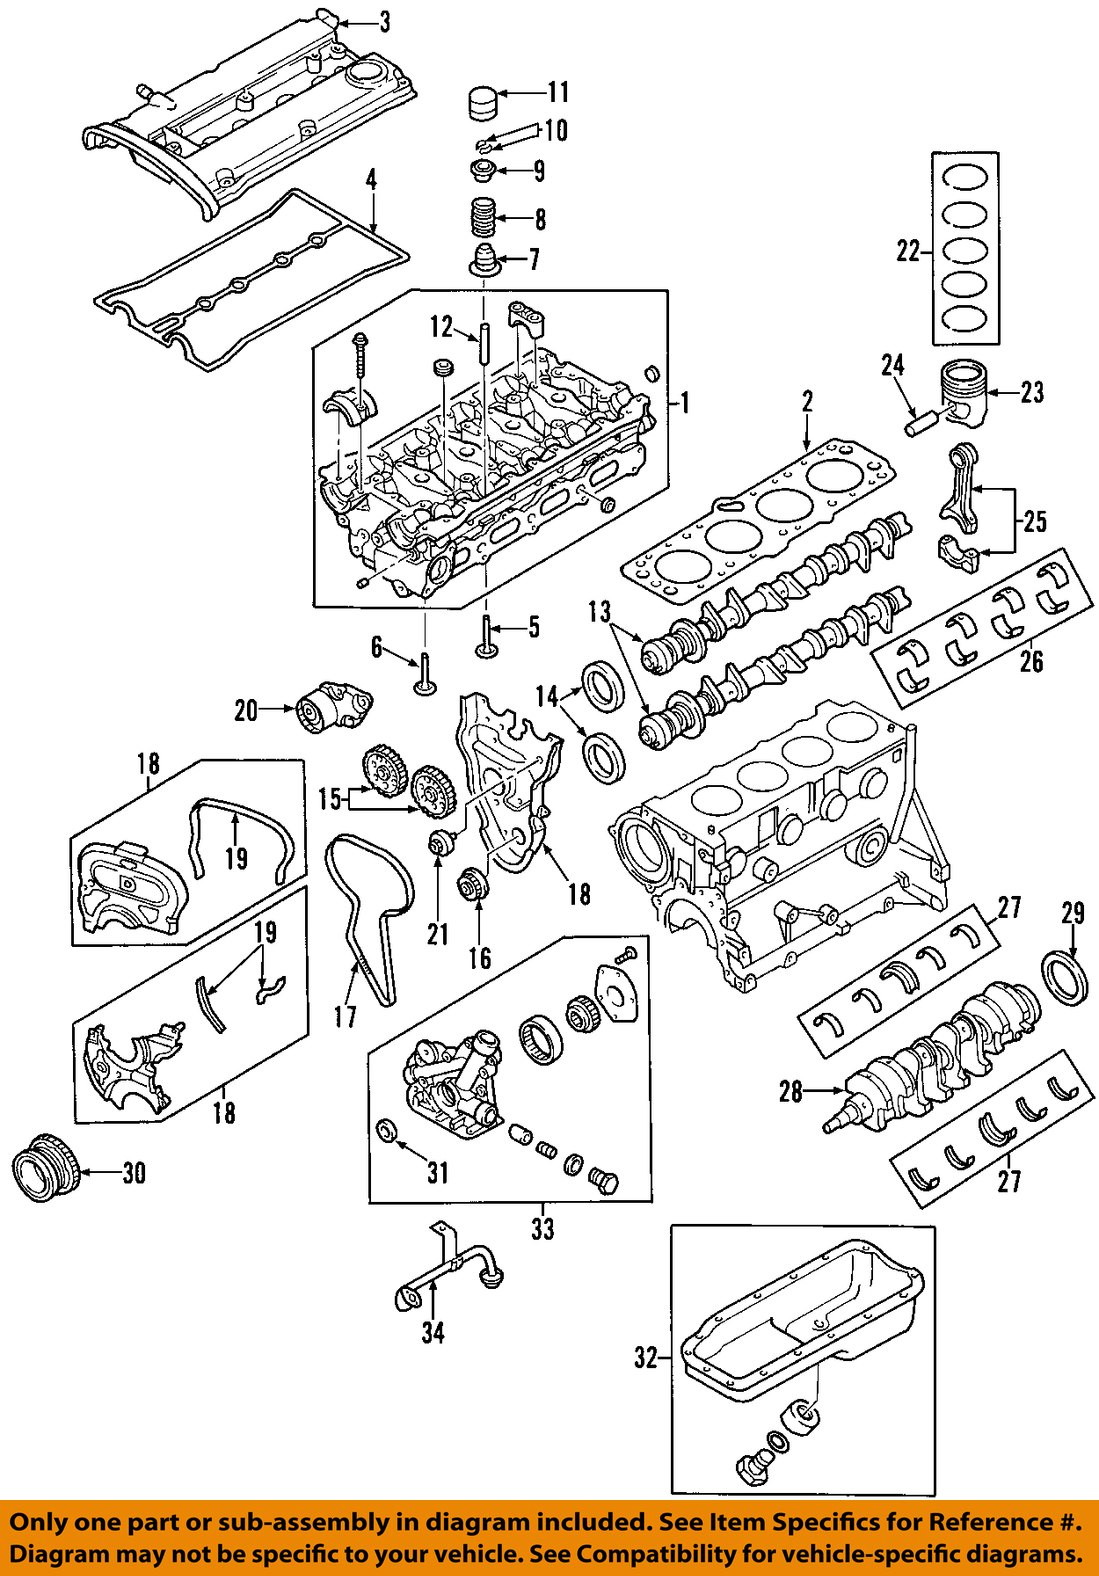 Chevy Aveo Engine Oil Diagram Free Download Wiring Diagram